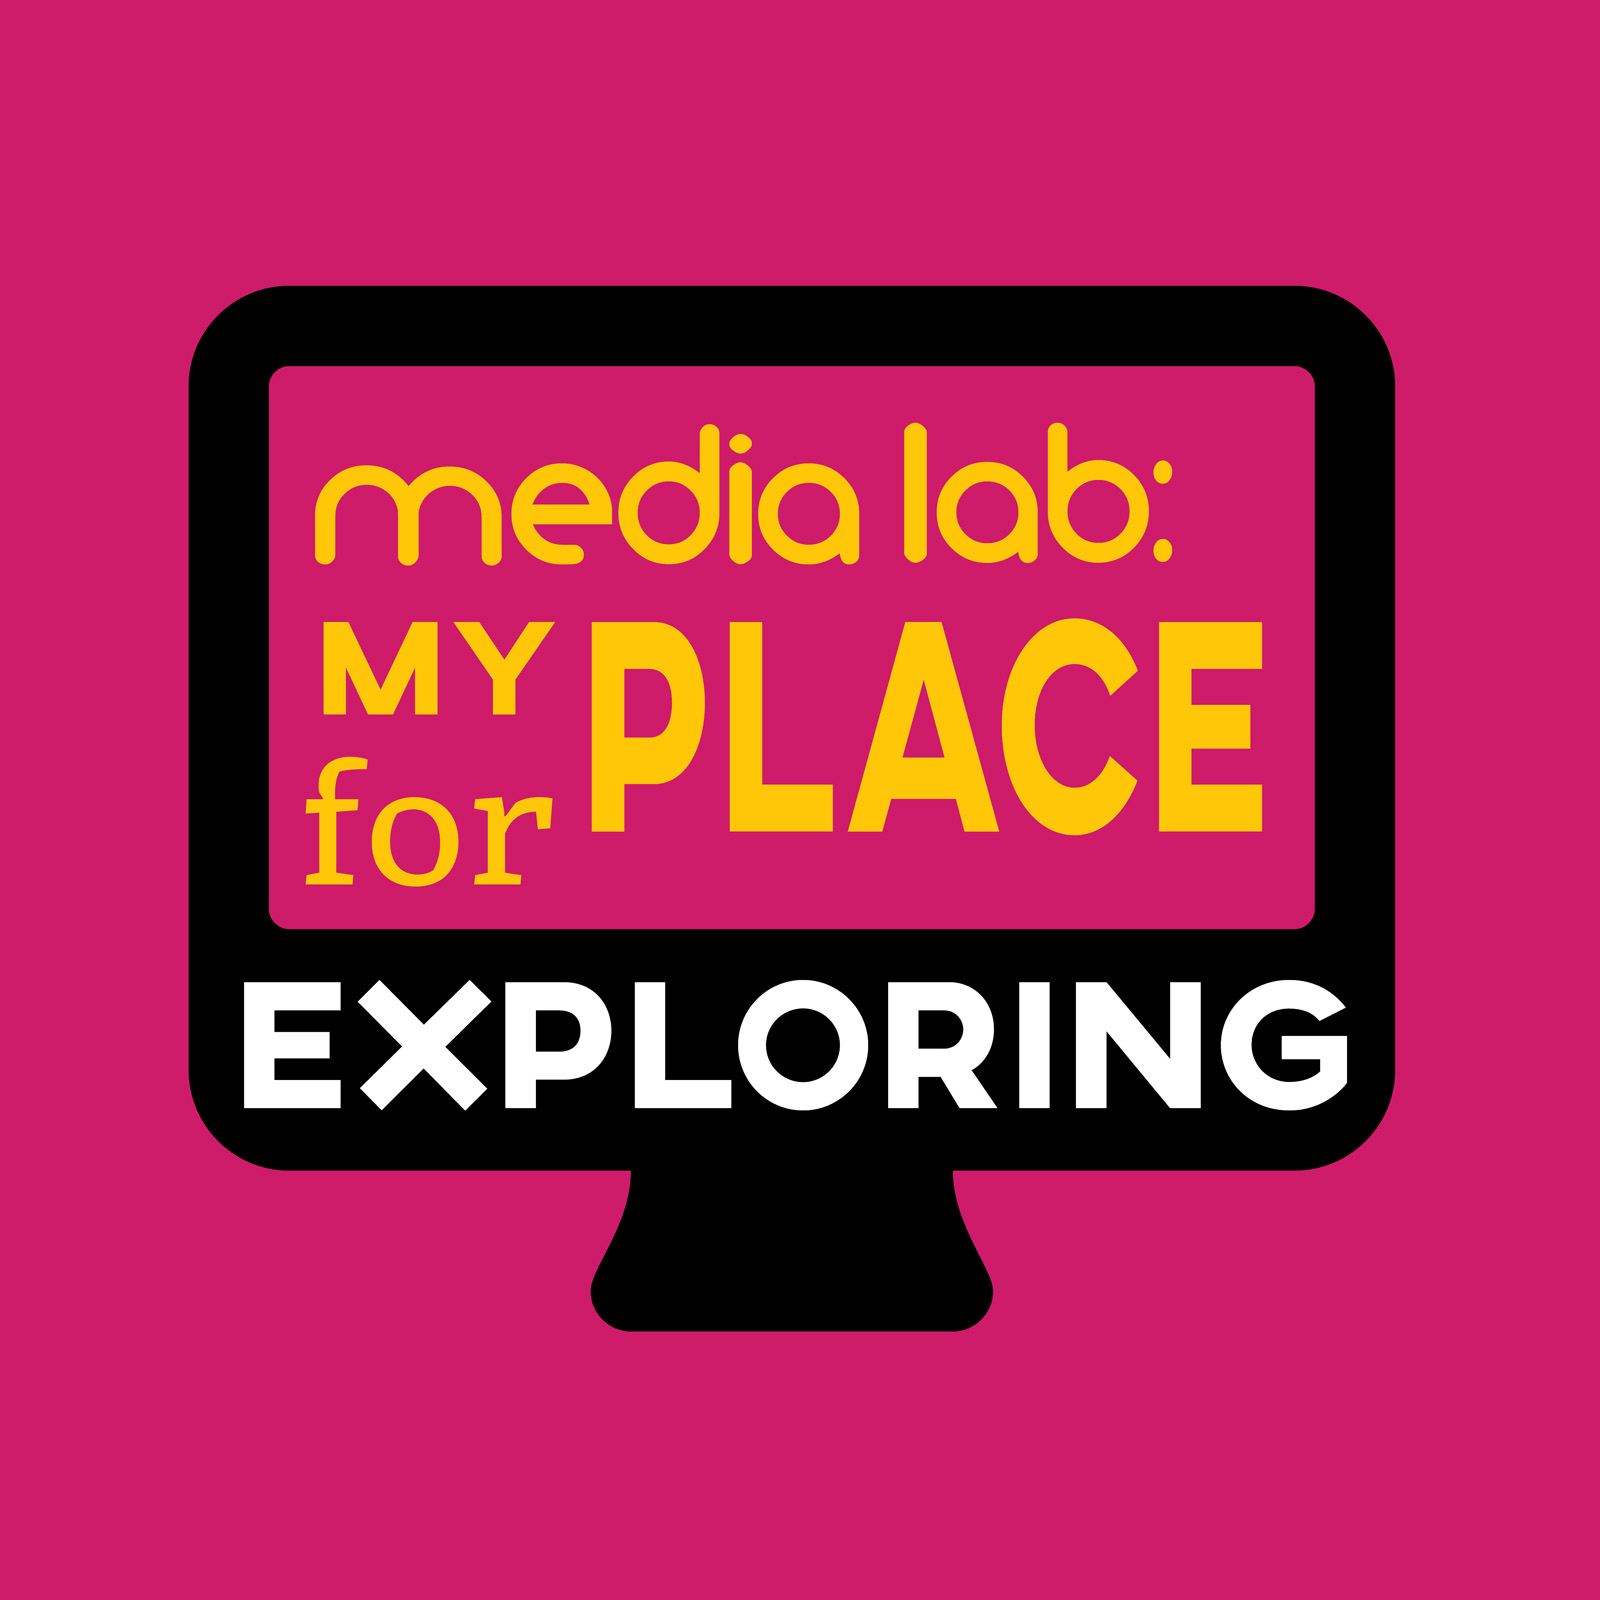 Media lab: my place for exploring